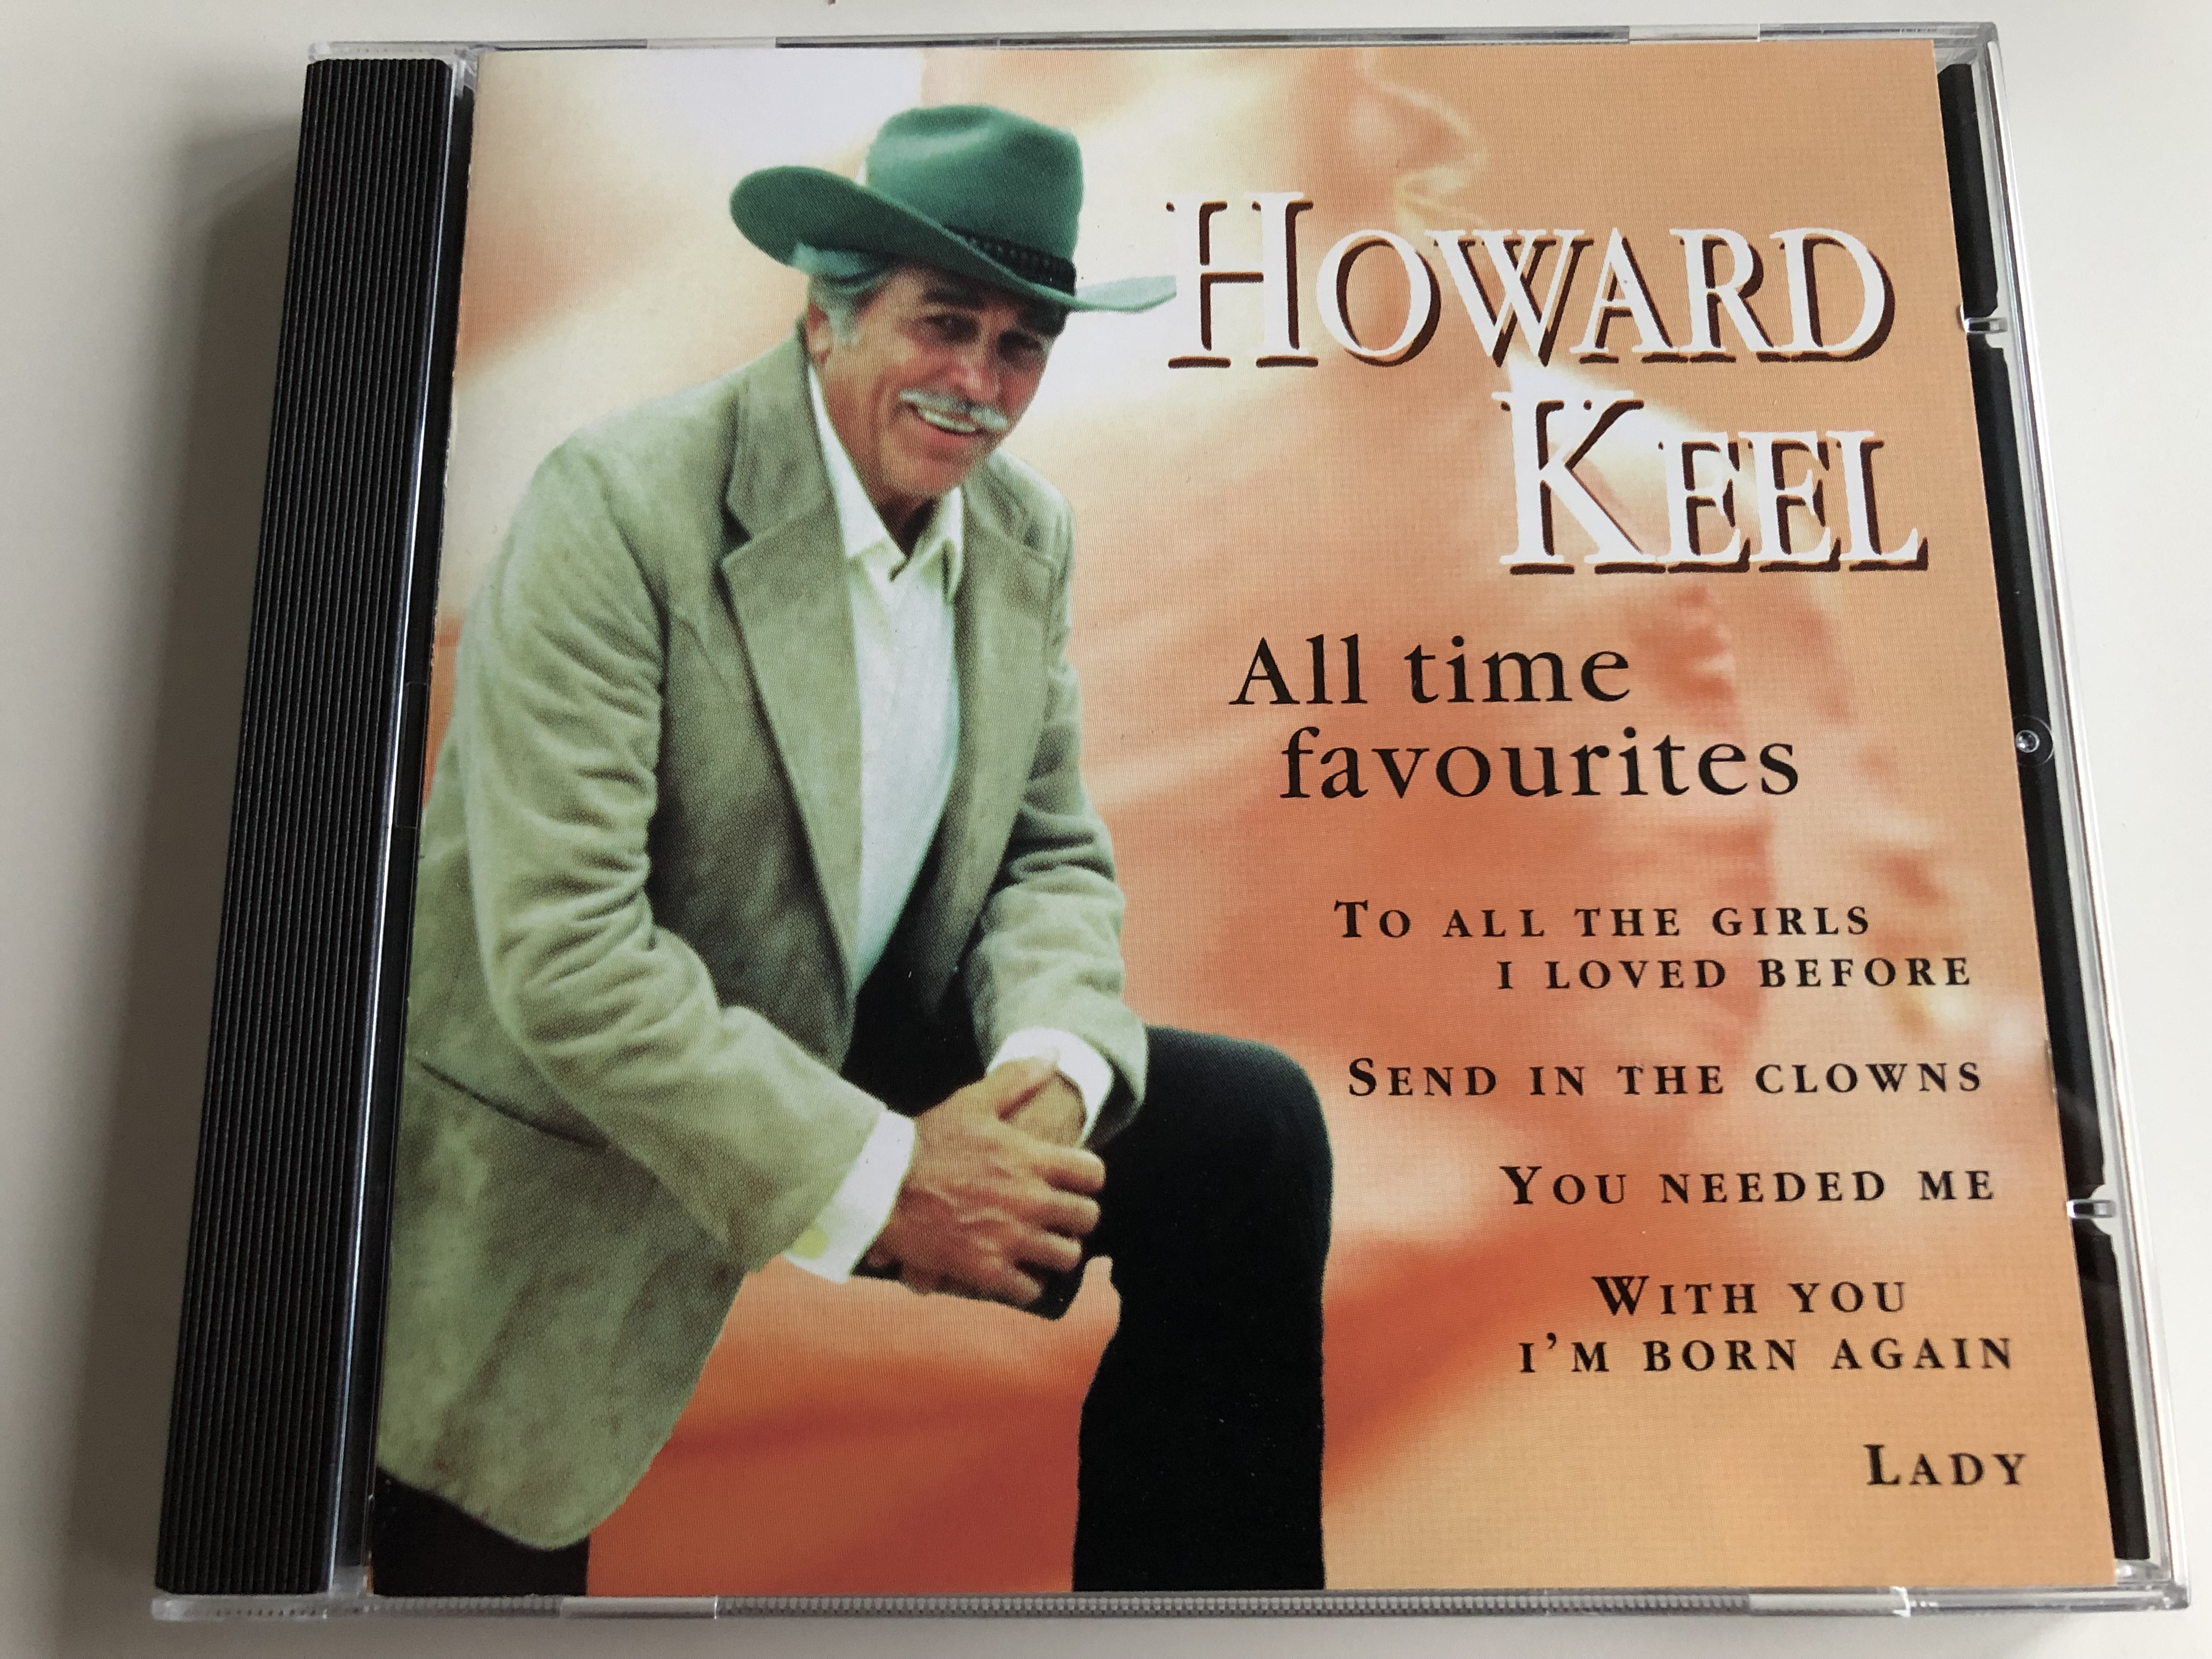 howard-keel-all-time-favourites-to-all-the-girls-i-loved-before-send-in-the-clowns-you-needed-me-with-you-i-m-born-again-lady-wise-buy-audio-cd-1997-wb-872022-1-.jpg